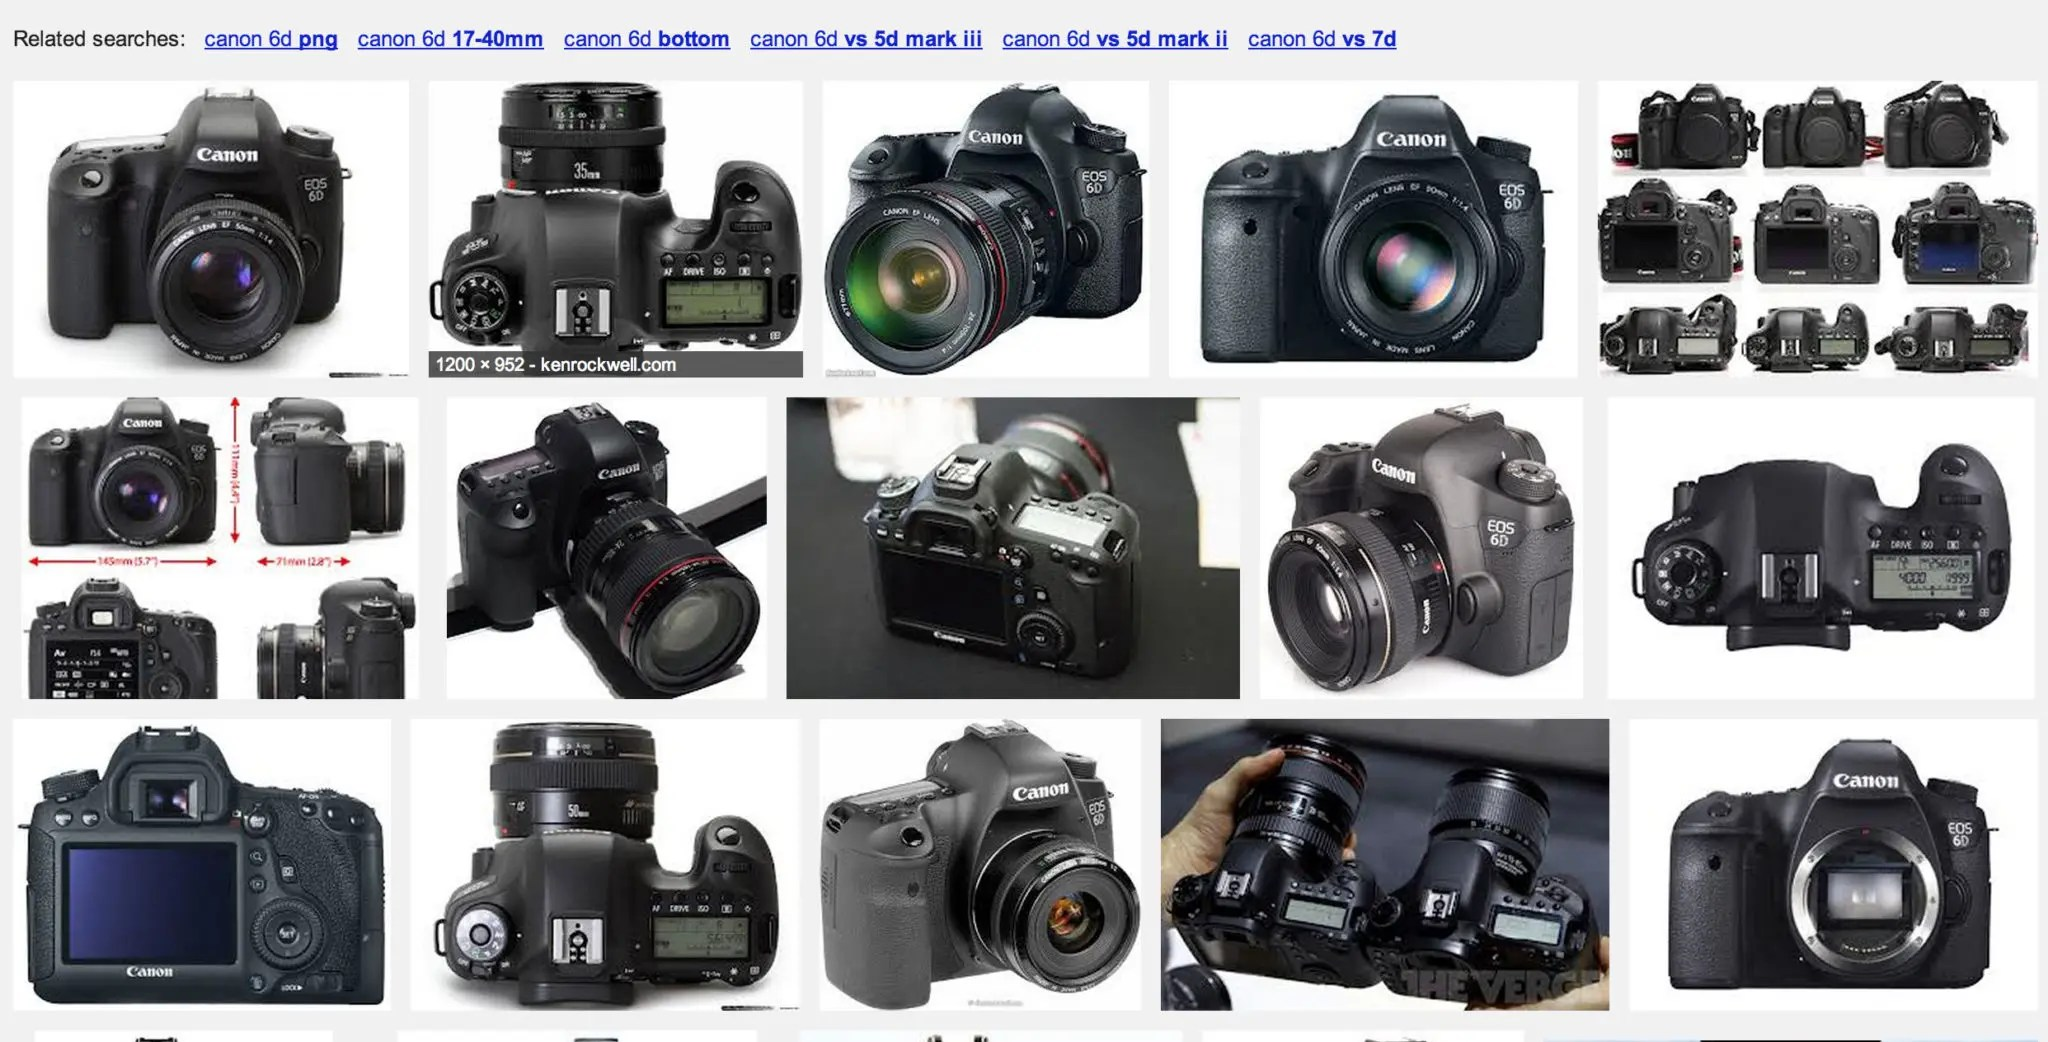 Cool Traffic Foryou New Google Images Page Will Ultimately Just Mean A Drop Canon 6d Vs 7d Mark Ii Canon 6d Vs 7d Price New Google Images Page Will Ultimately Just Mean A Drop dpreview Canon 6d Vs 7d